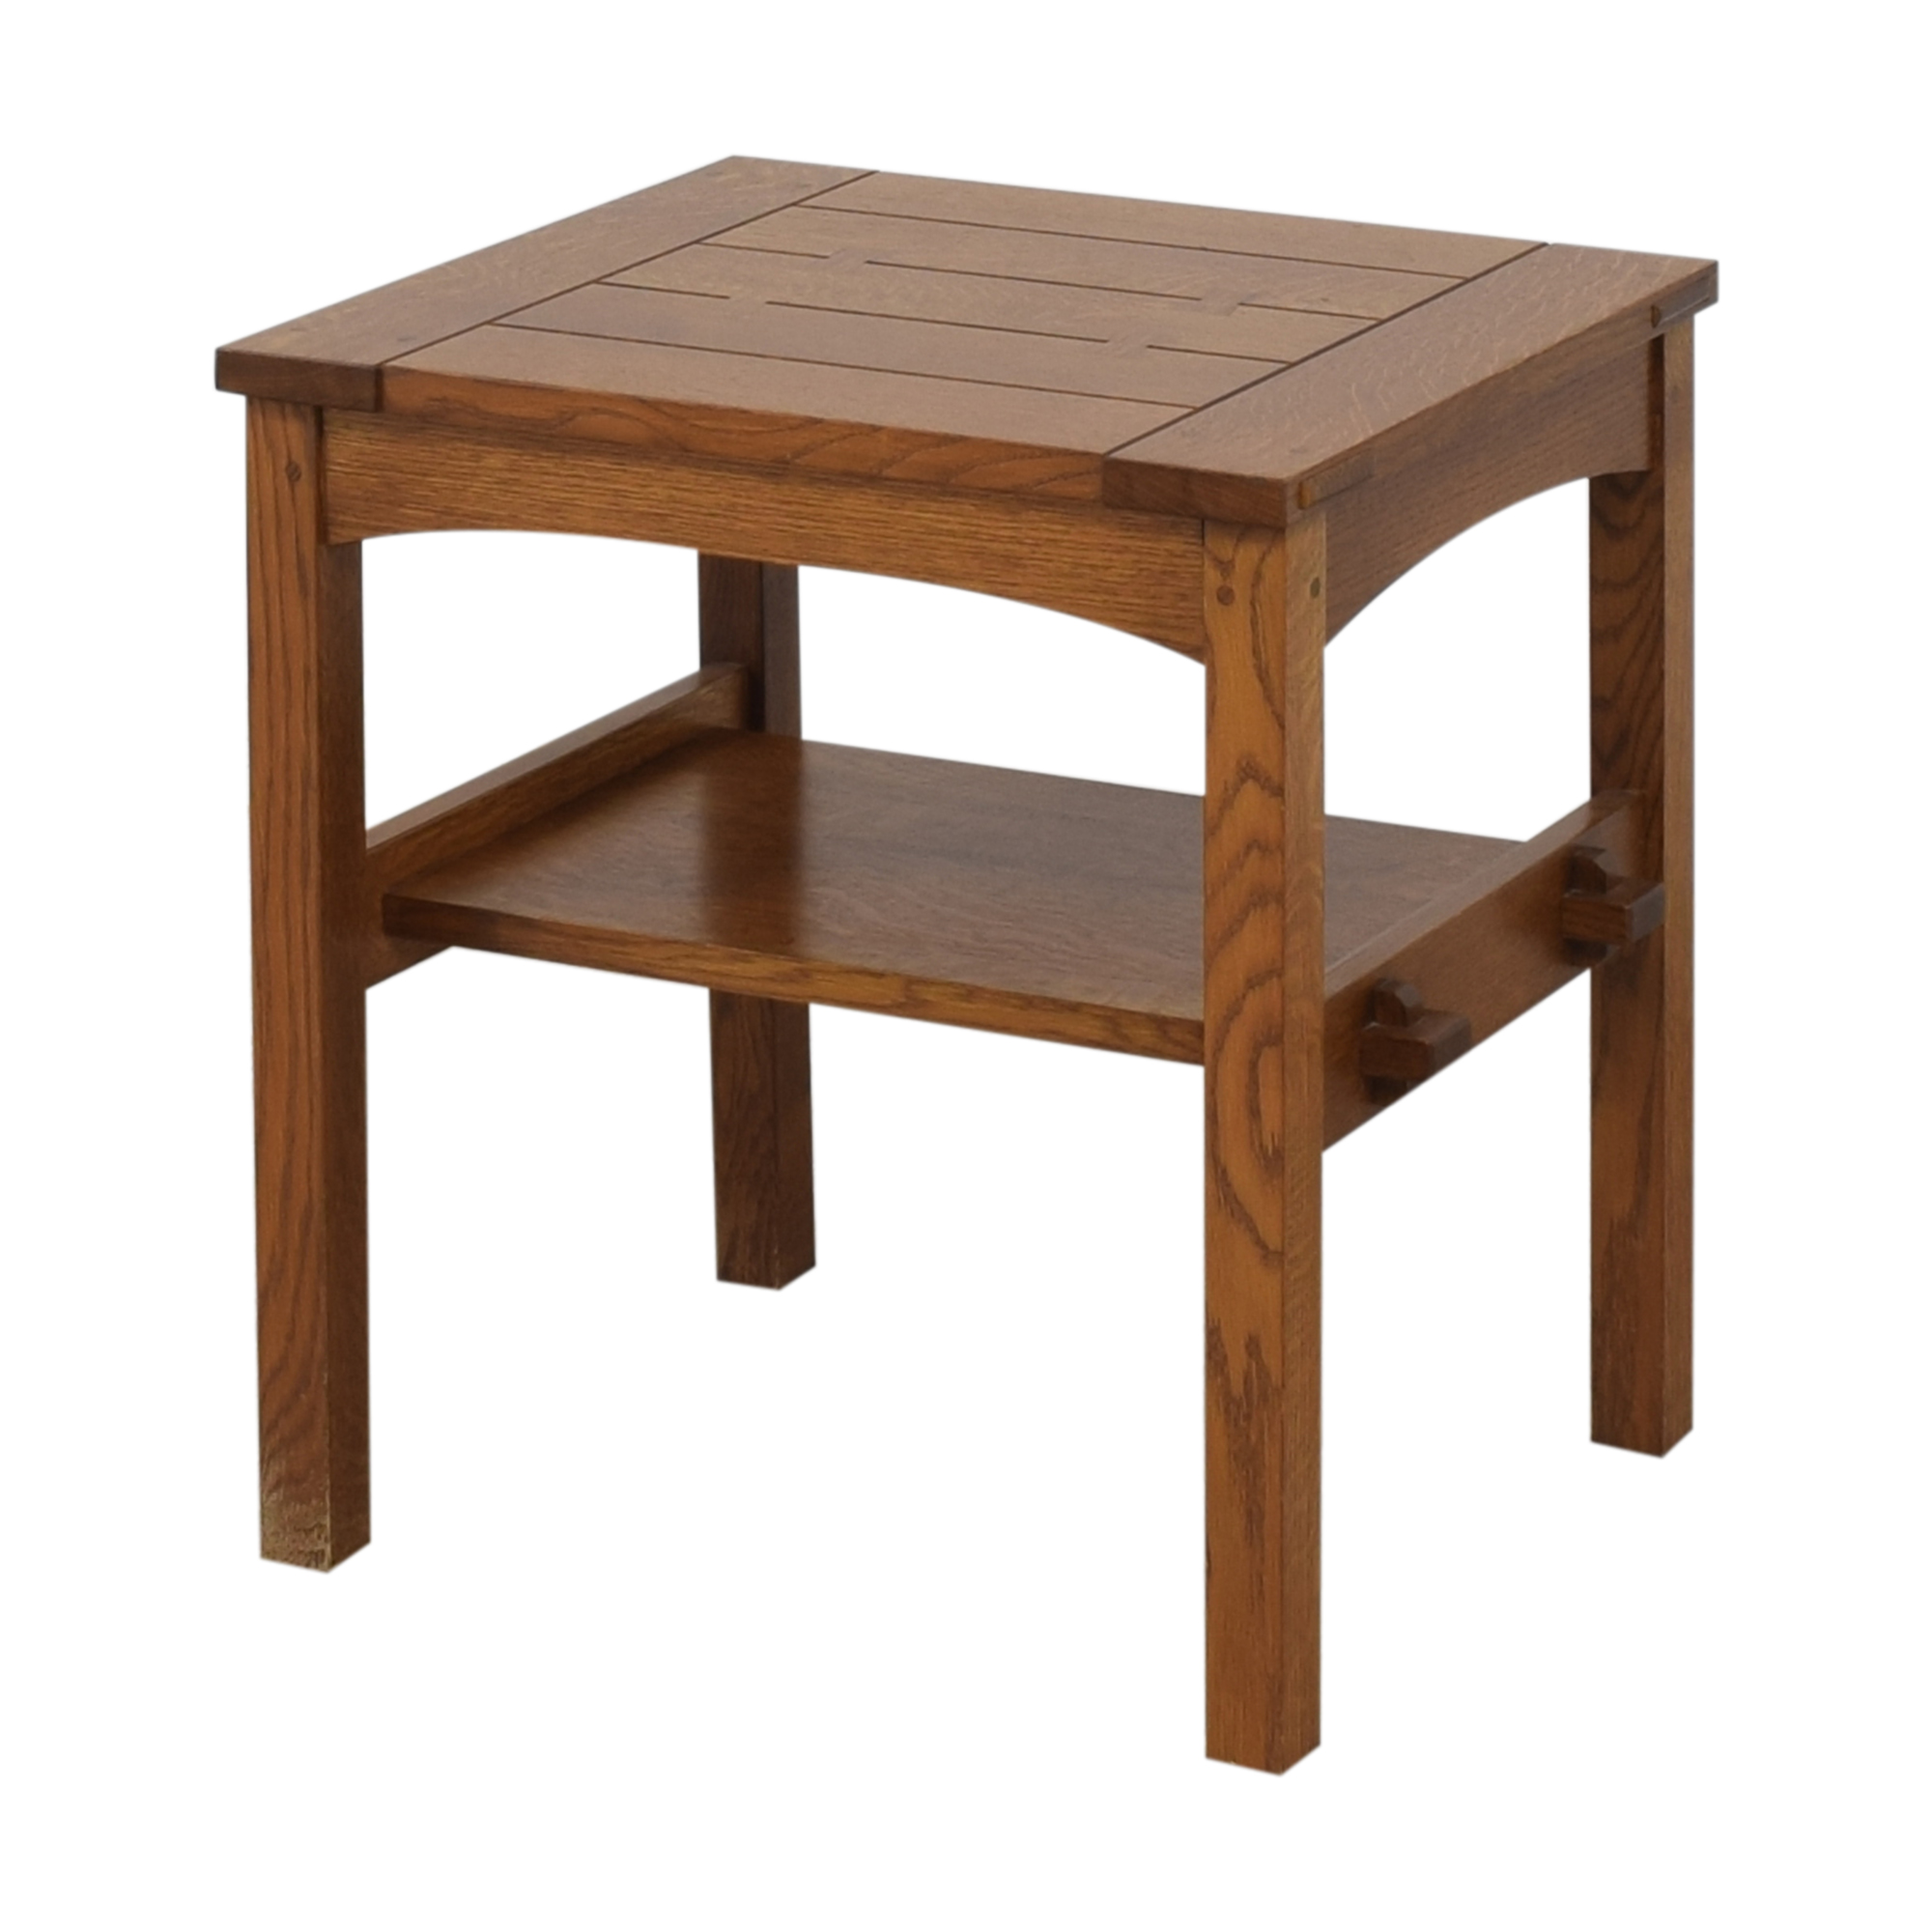 Stickley Furniture Stickley Furniture Butterfly Top End Table nj